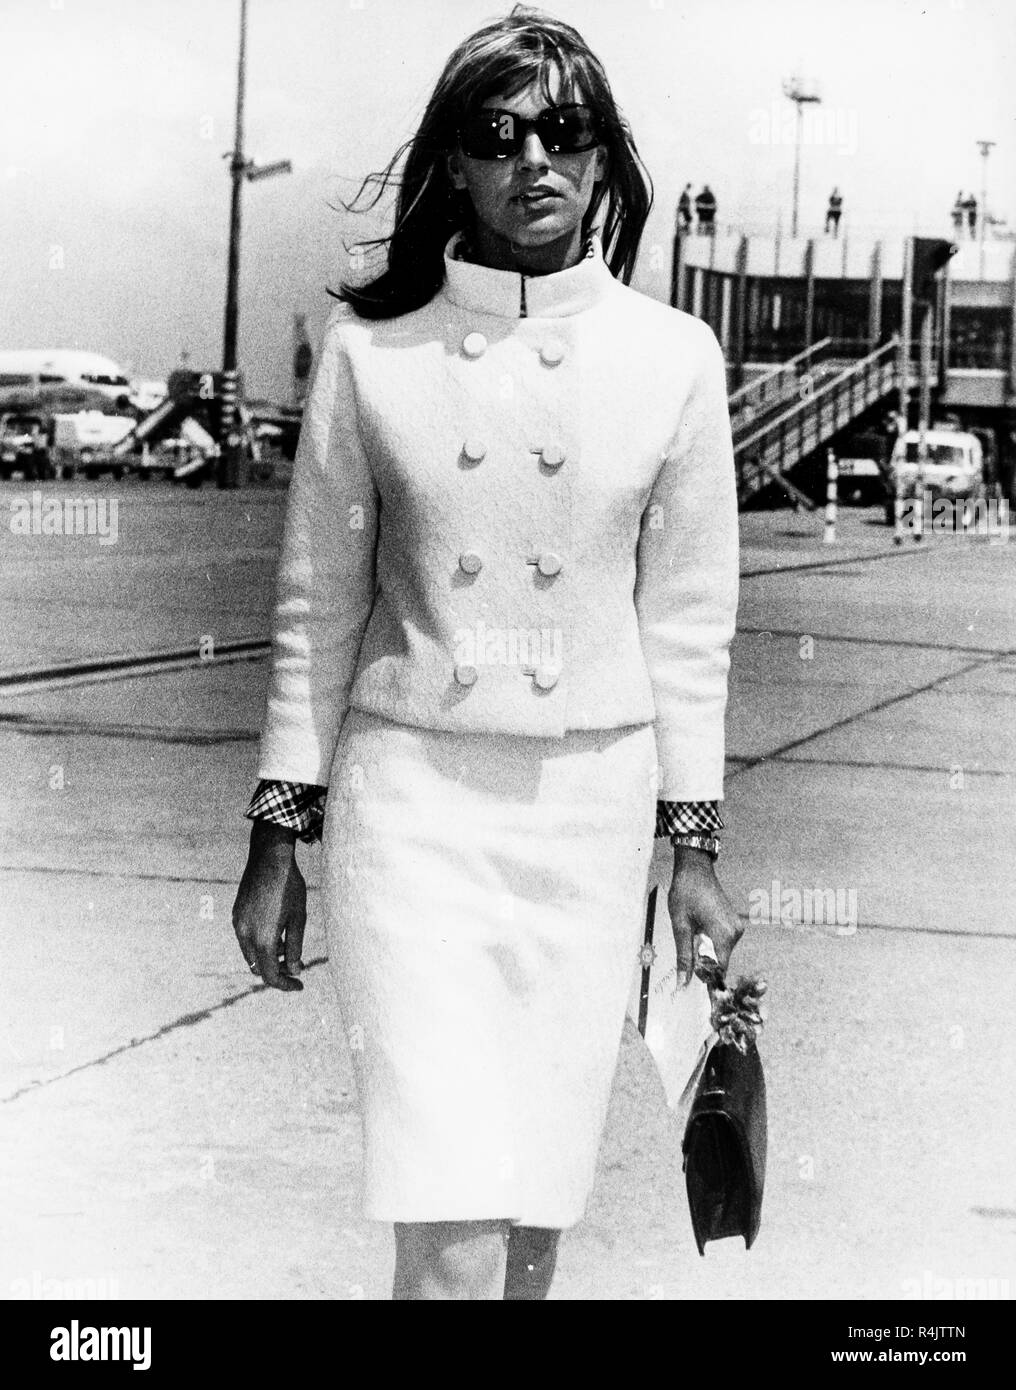 catherine spaak, rome airport, 1966 Stock Photo - Alamy